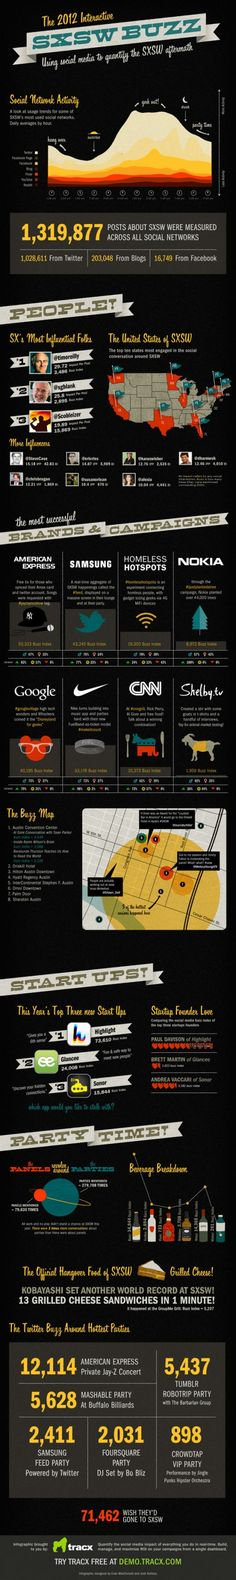 The Ultimate SXSW Infographic